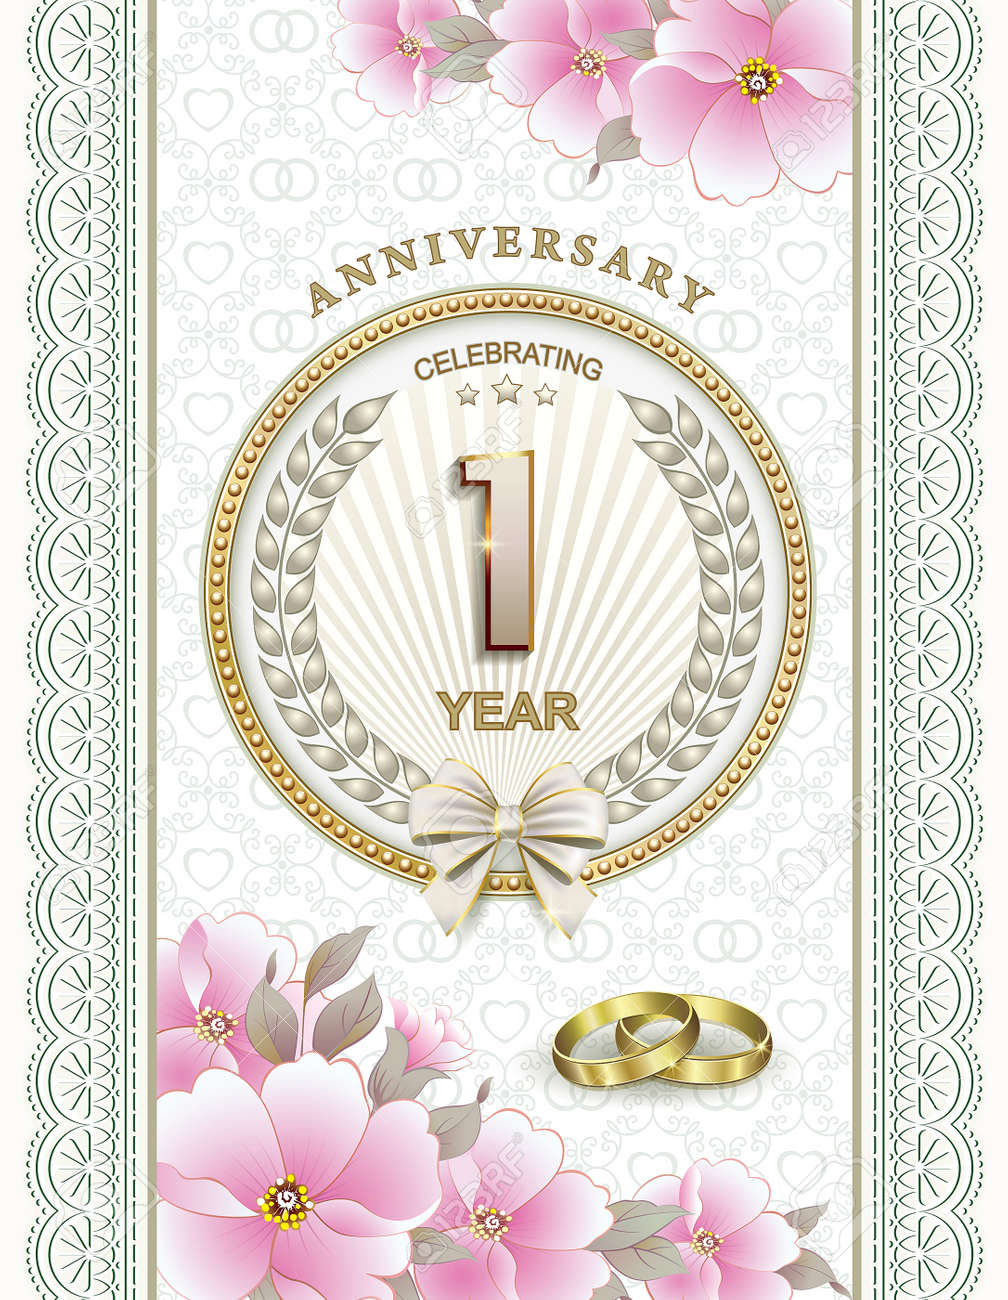 Beautiful Invitation Card For Wedding Anniversary Royalty Free ...